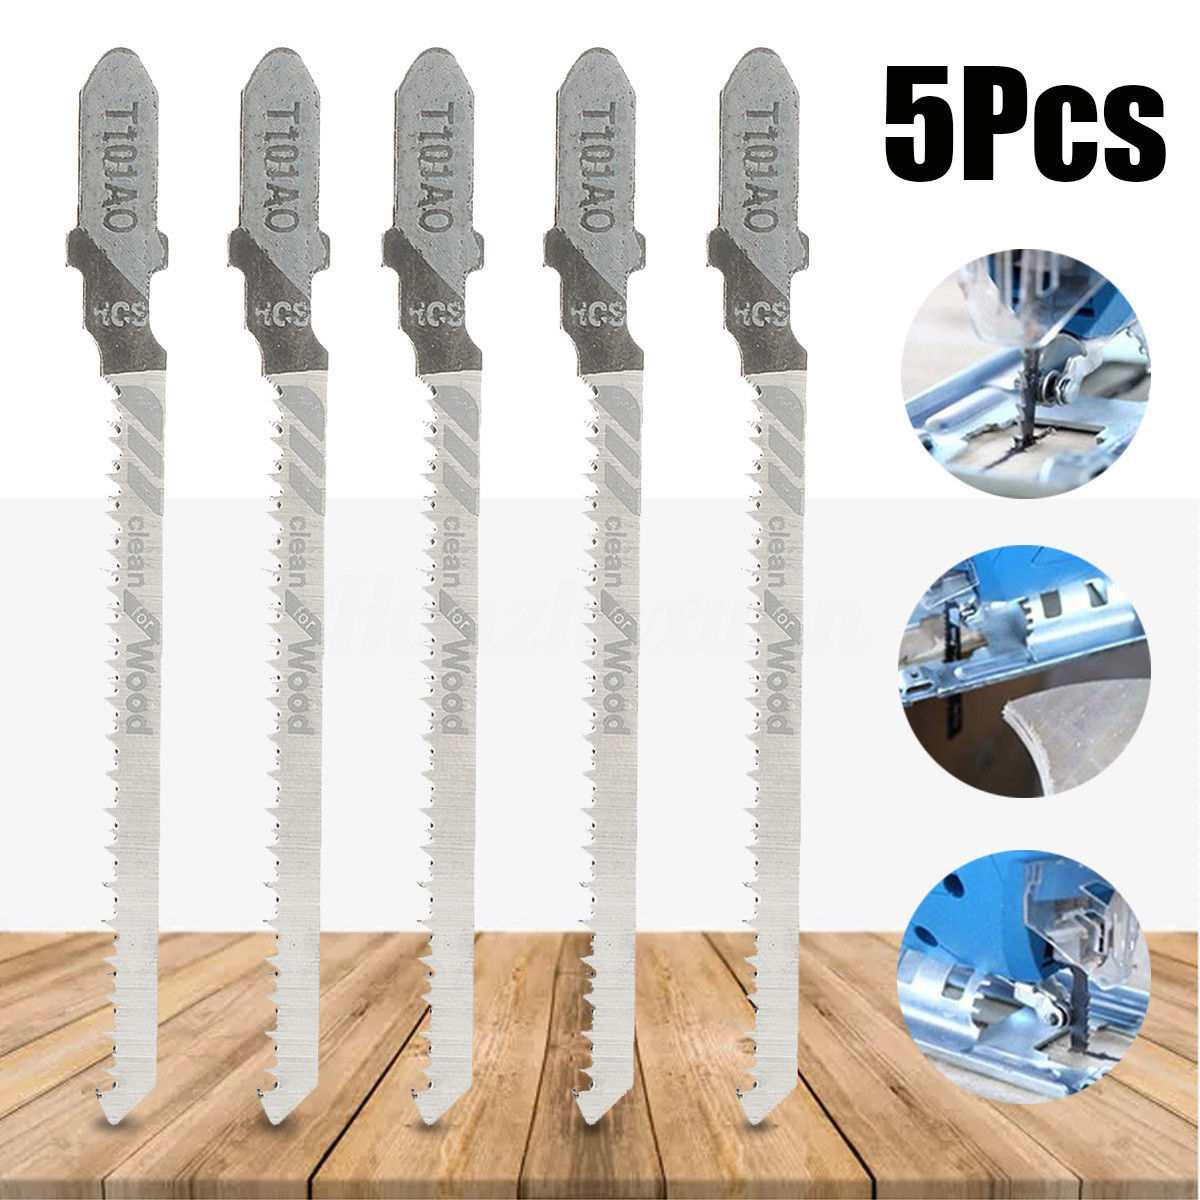 5cs Doersupp Steel Reciprocating Wood Saw Blades Tool Set For  Makita 7.4x0.5cm/2.91x0.2